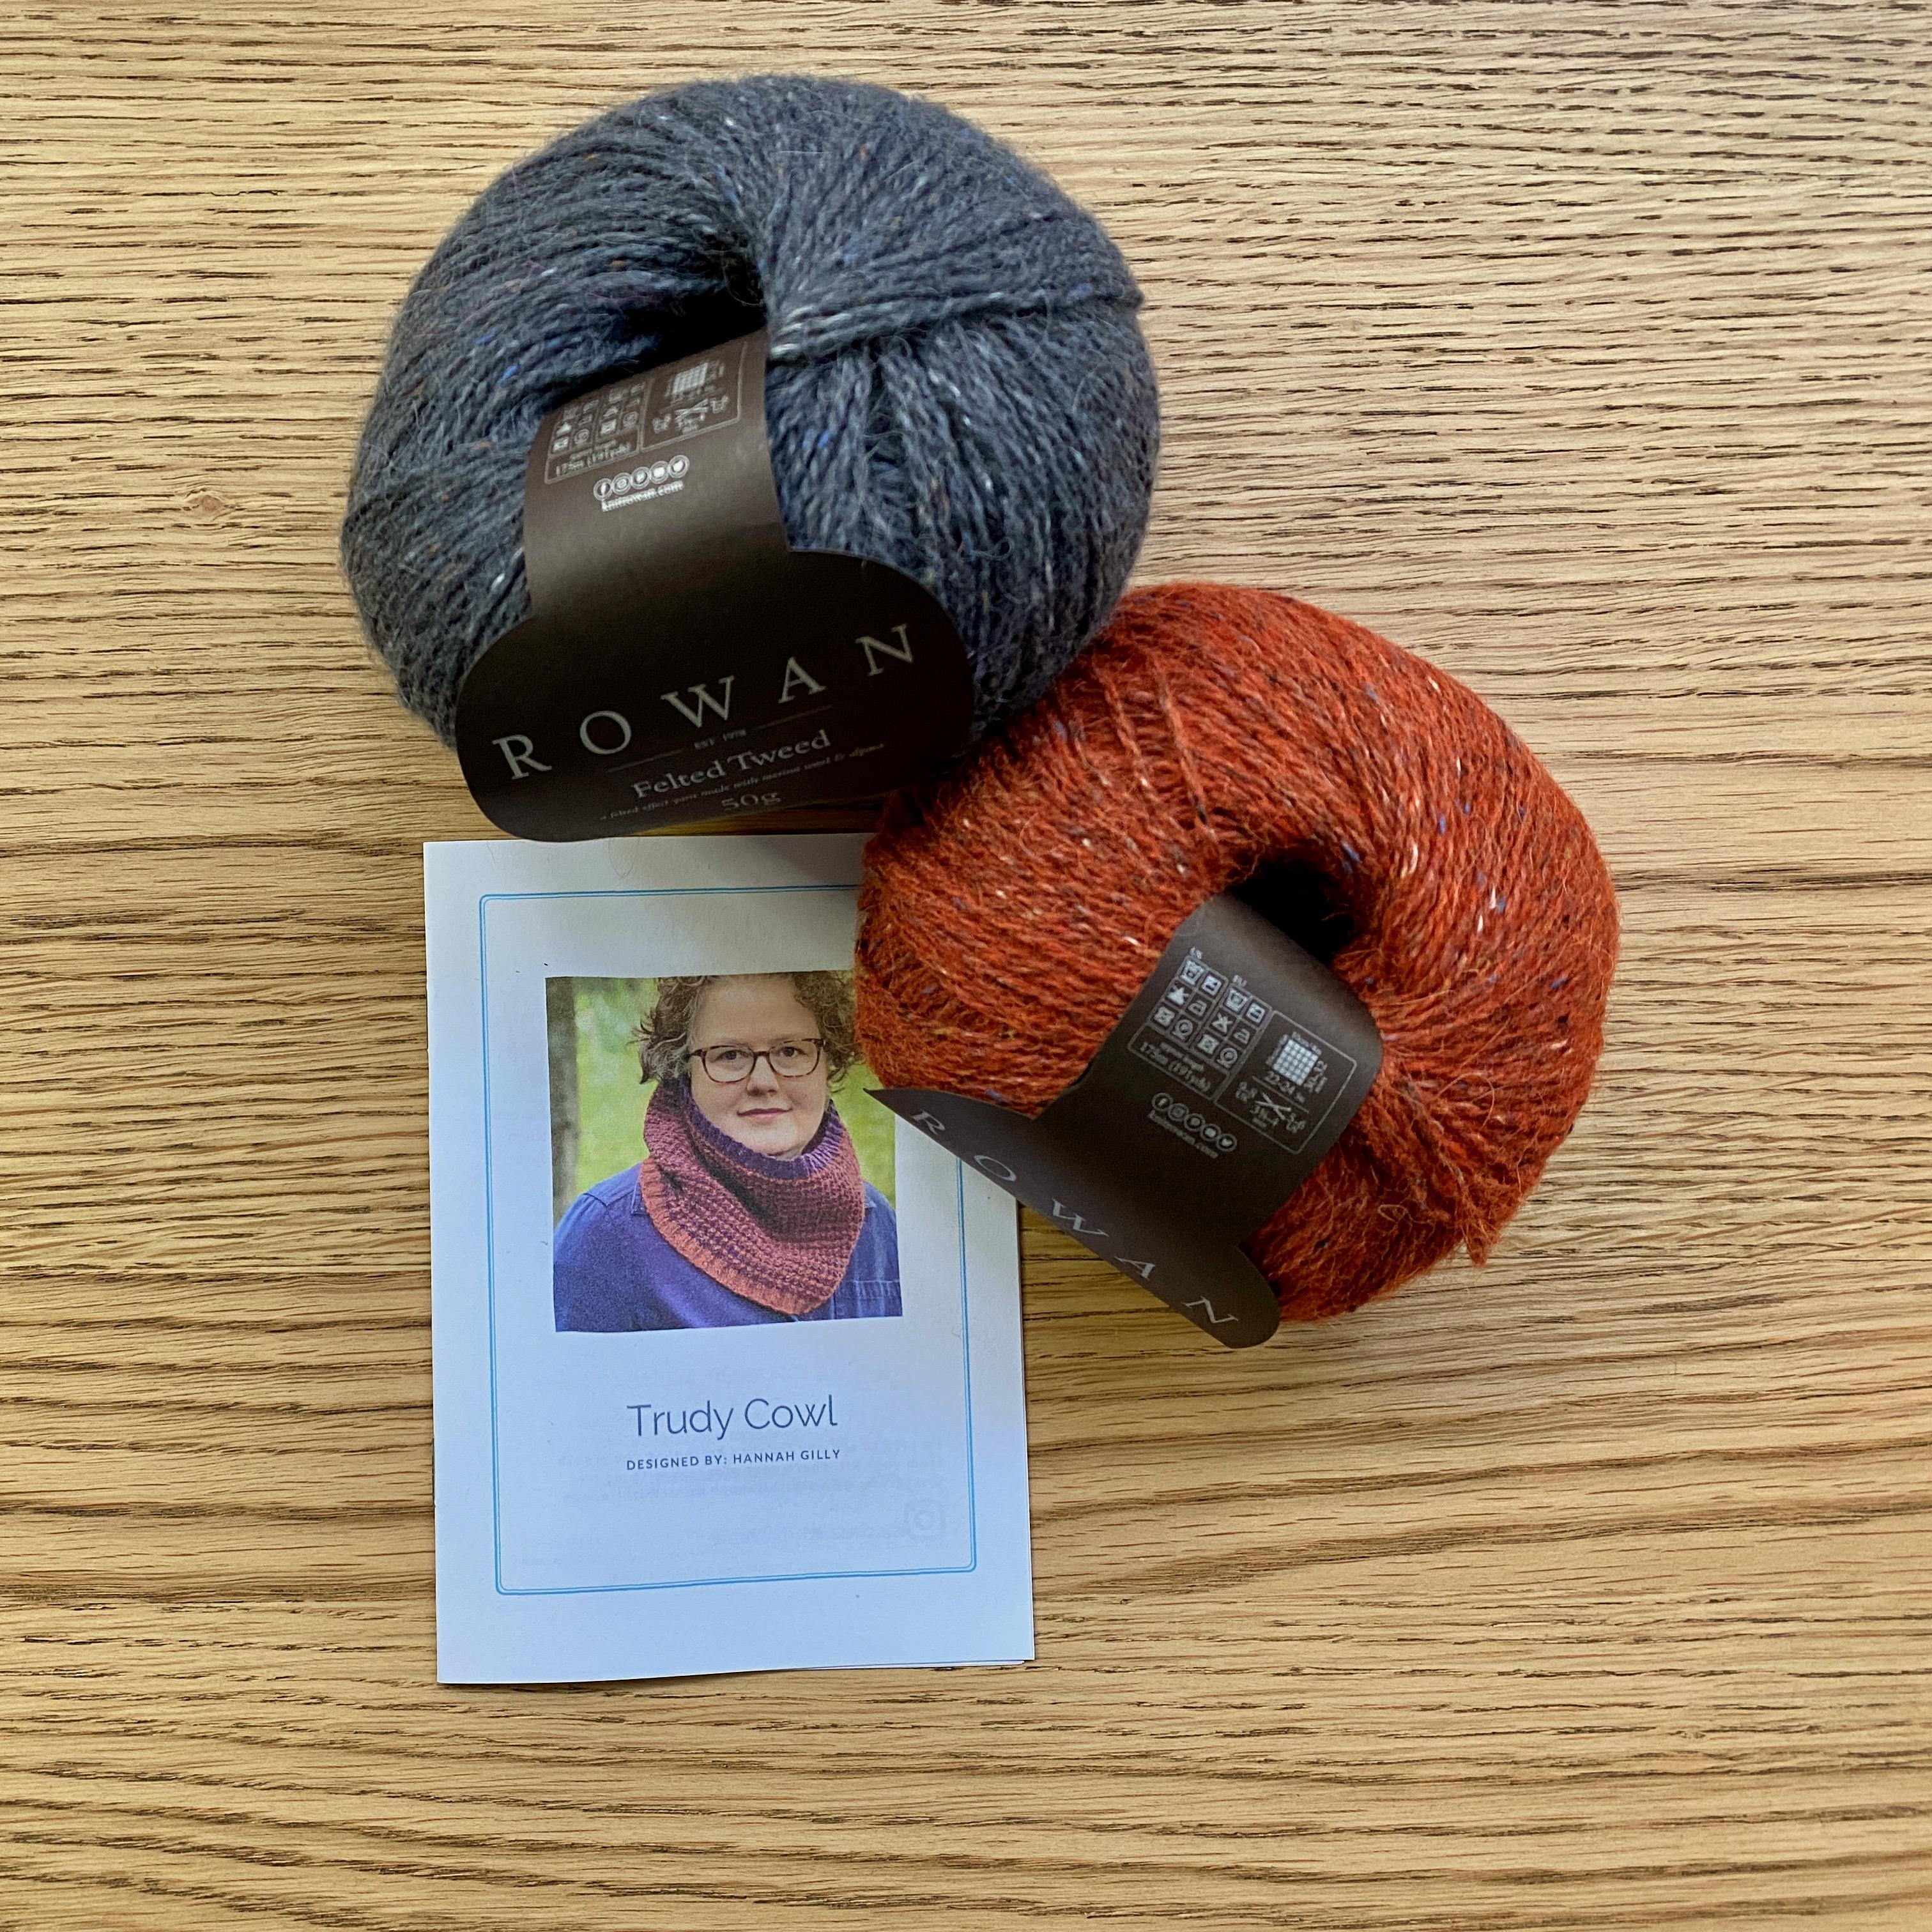 Trudy Cowl Knitting pattern on wooden table with 2 balls of yarn - ginger orange and carbon grey